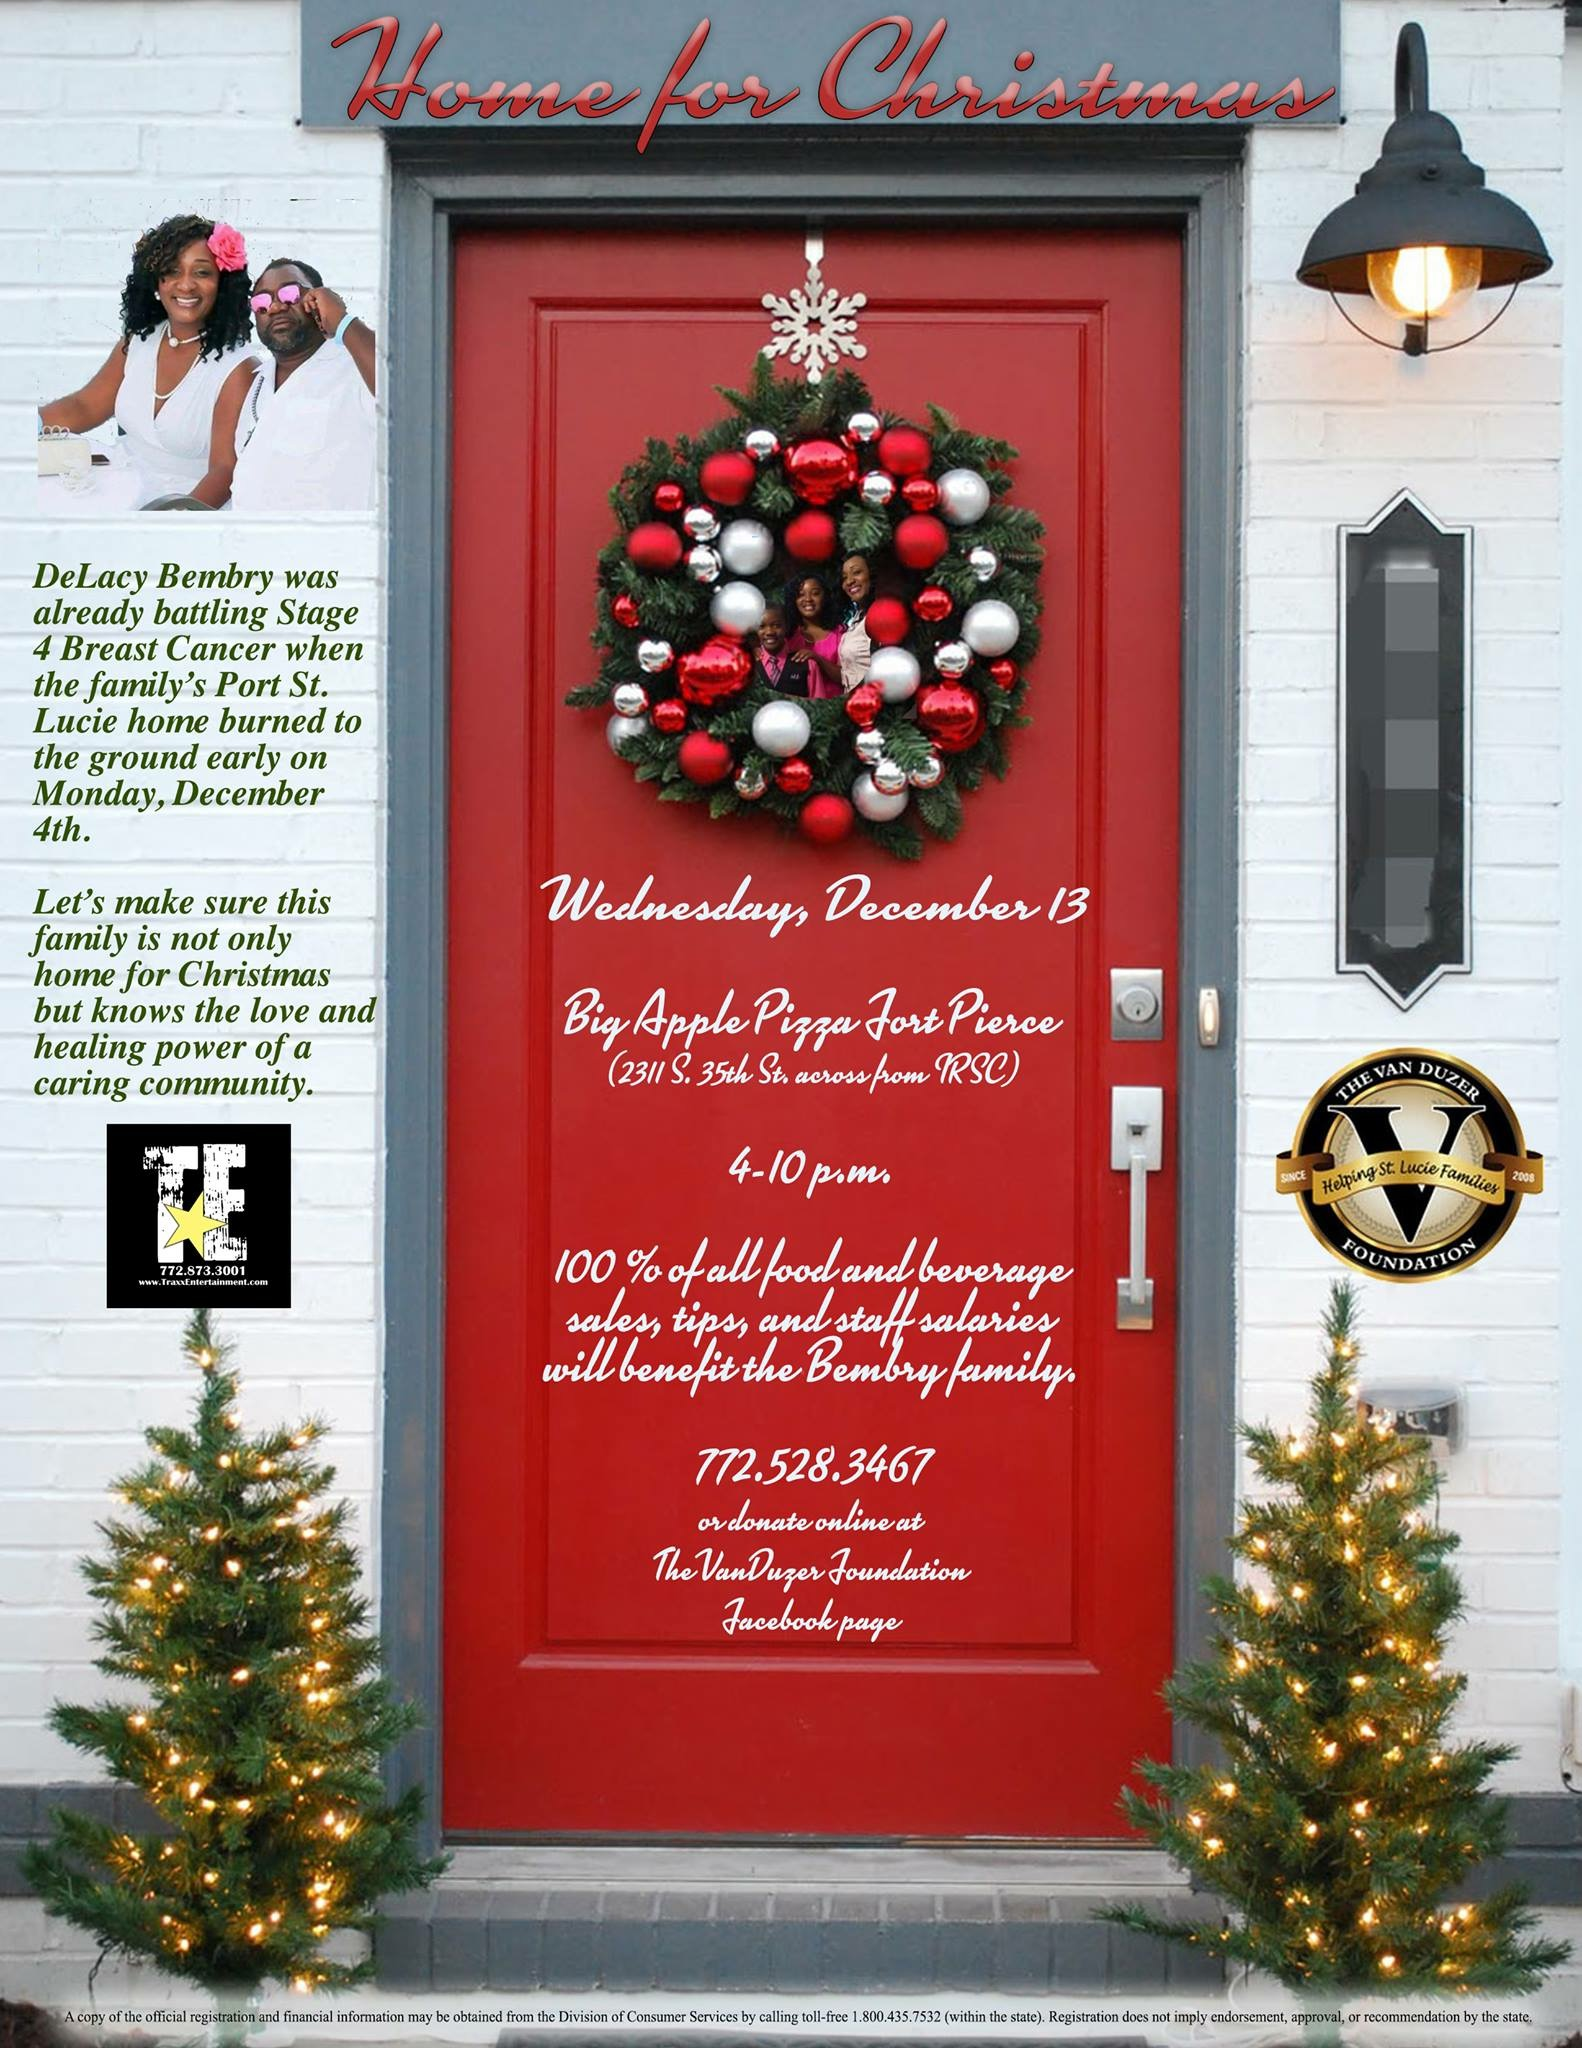 A Home For Christmas.Home For Christmas The Vanduzer Foundation